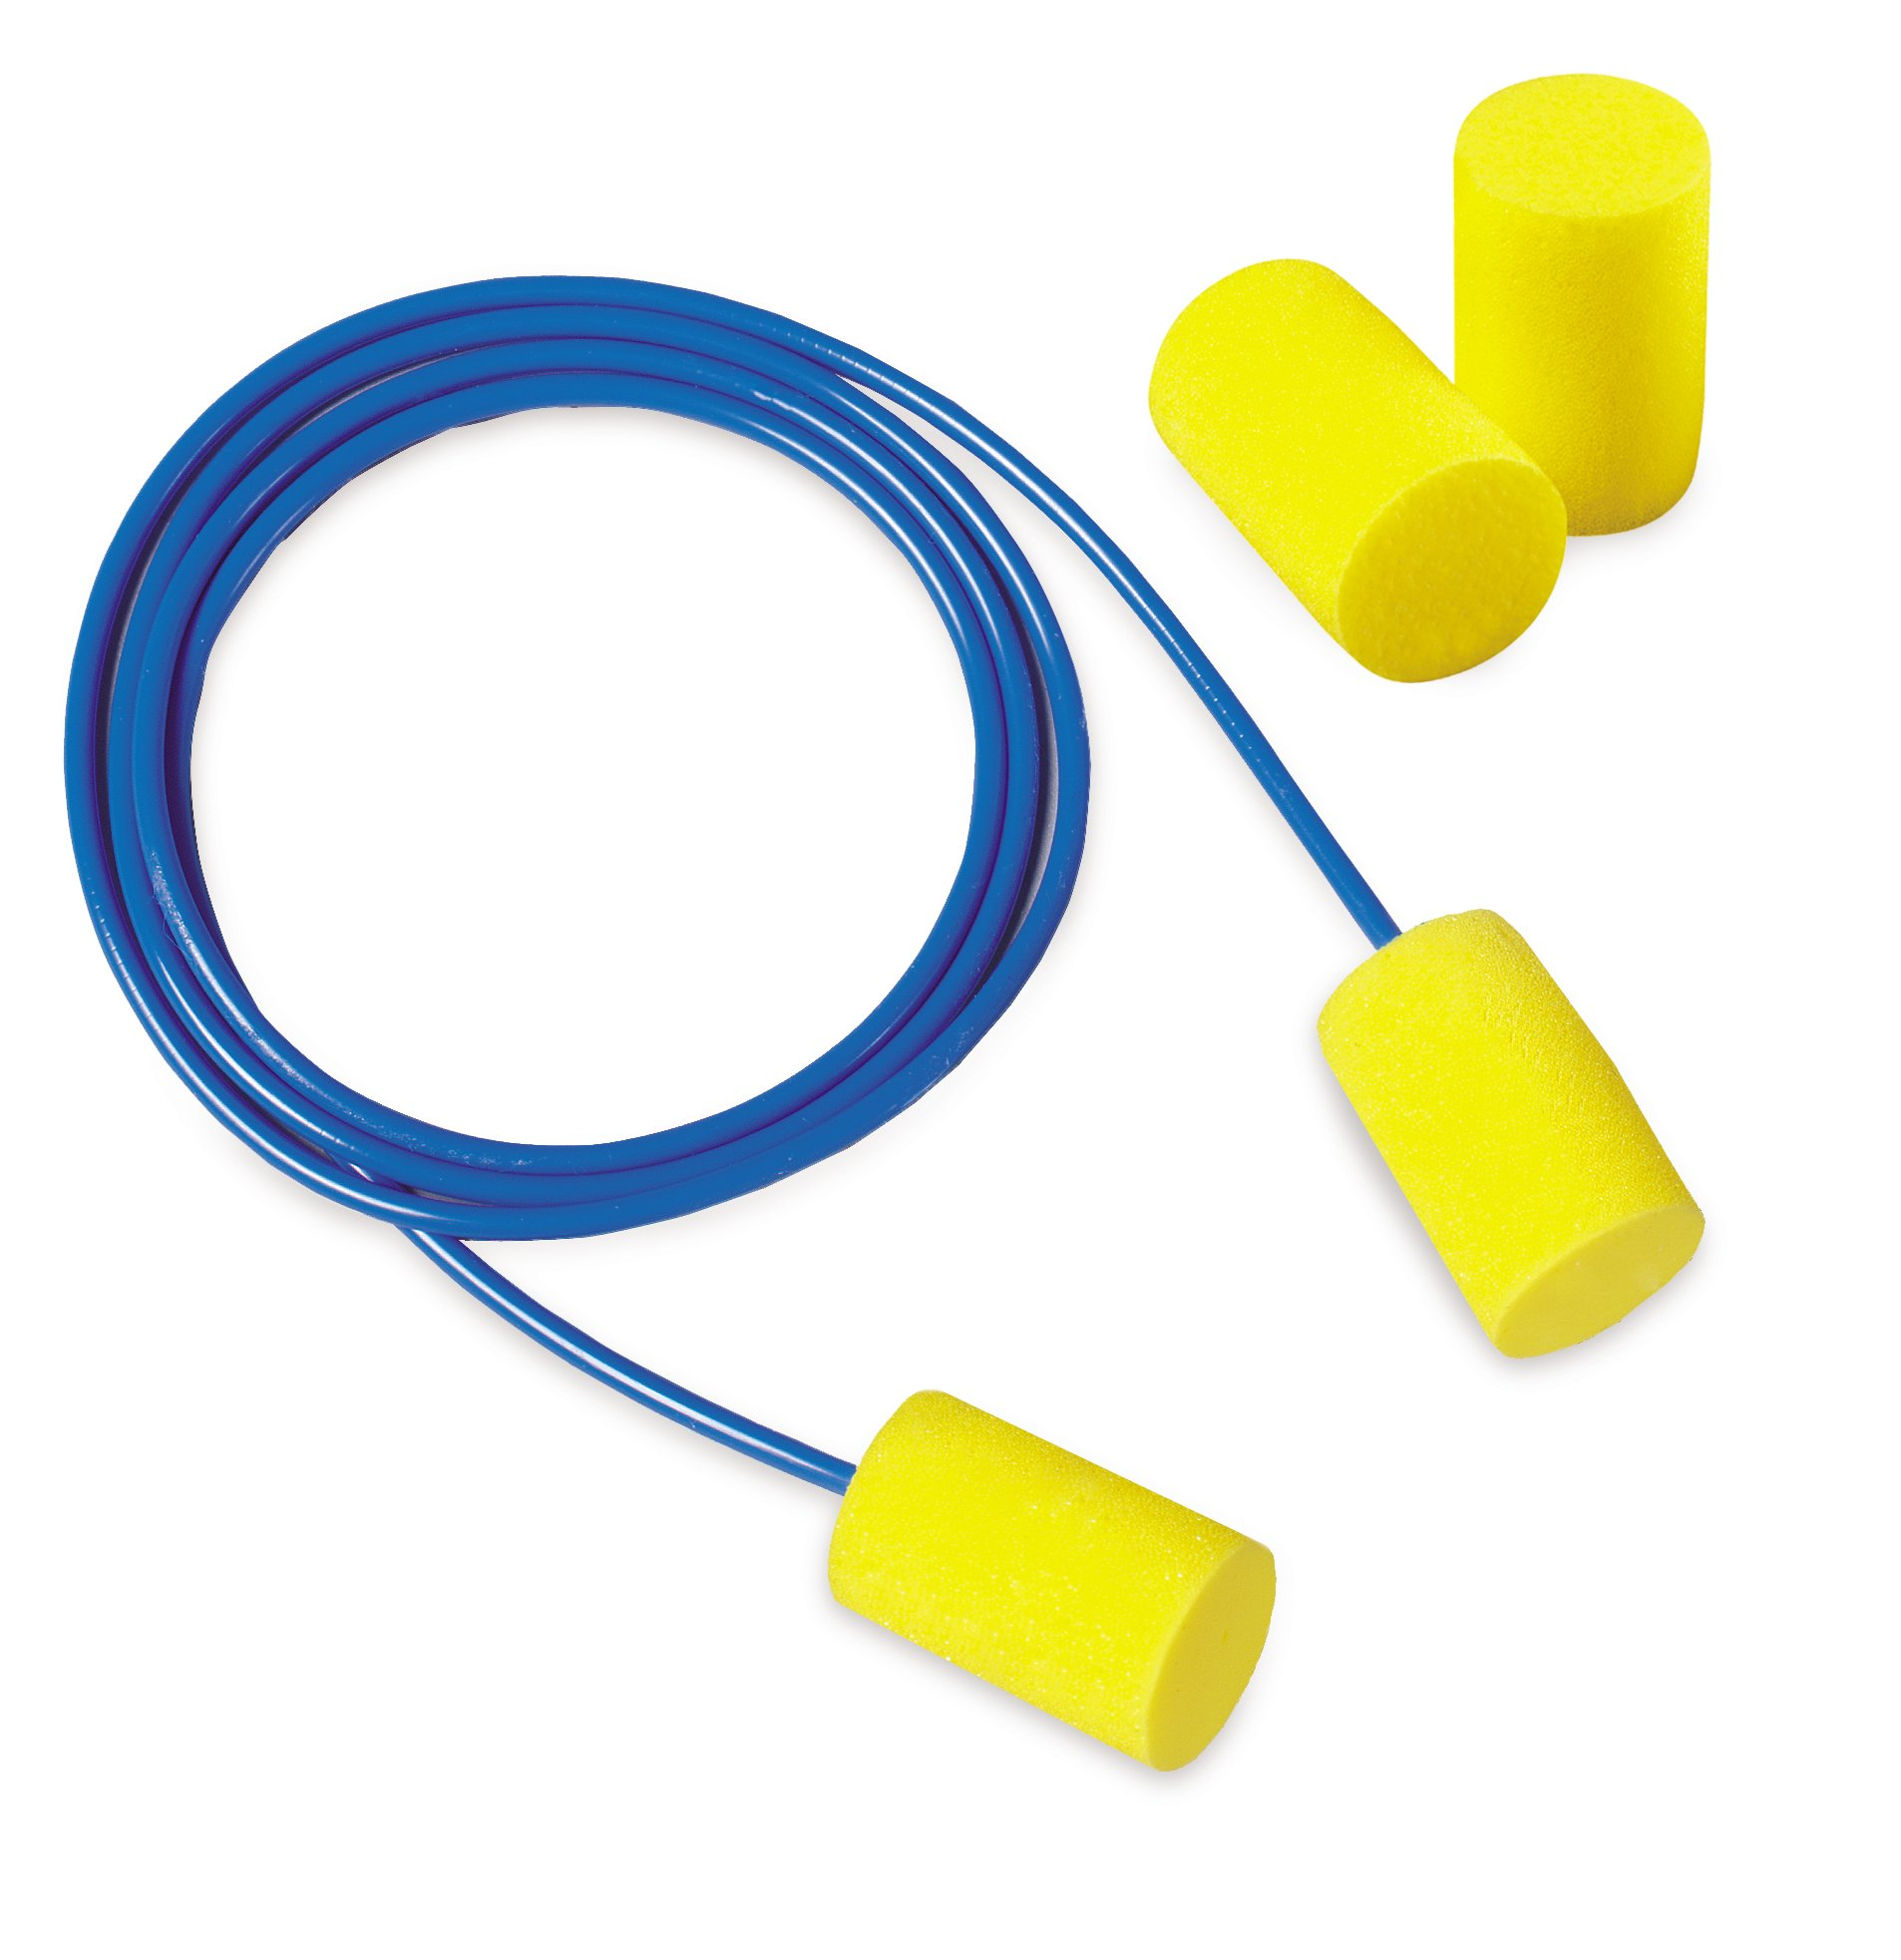 3M E-A-R Classic Soft Corded Earplugs 311-6001 by 3M Personal Protective Equipment